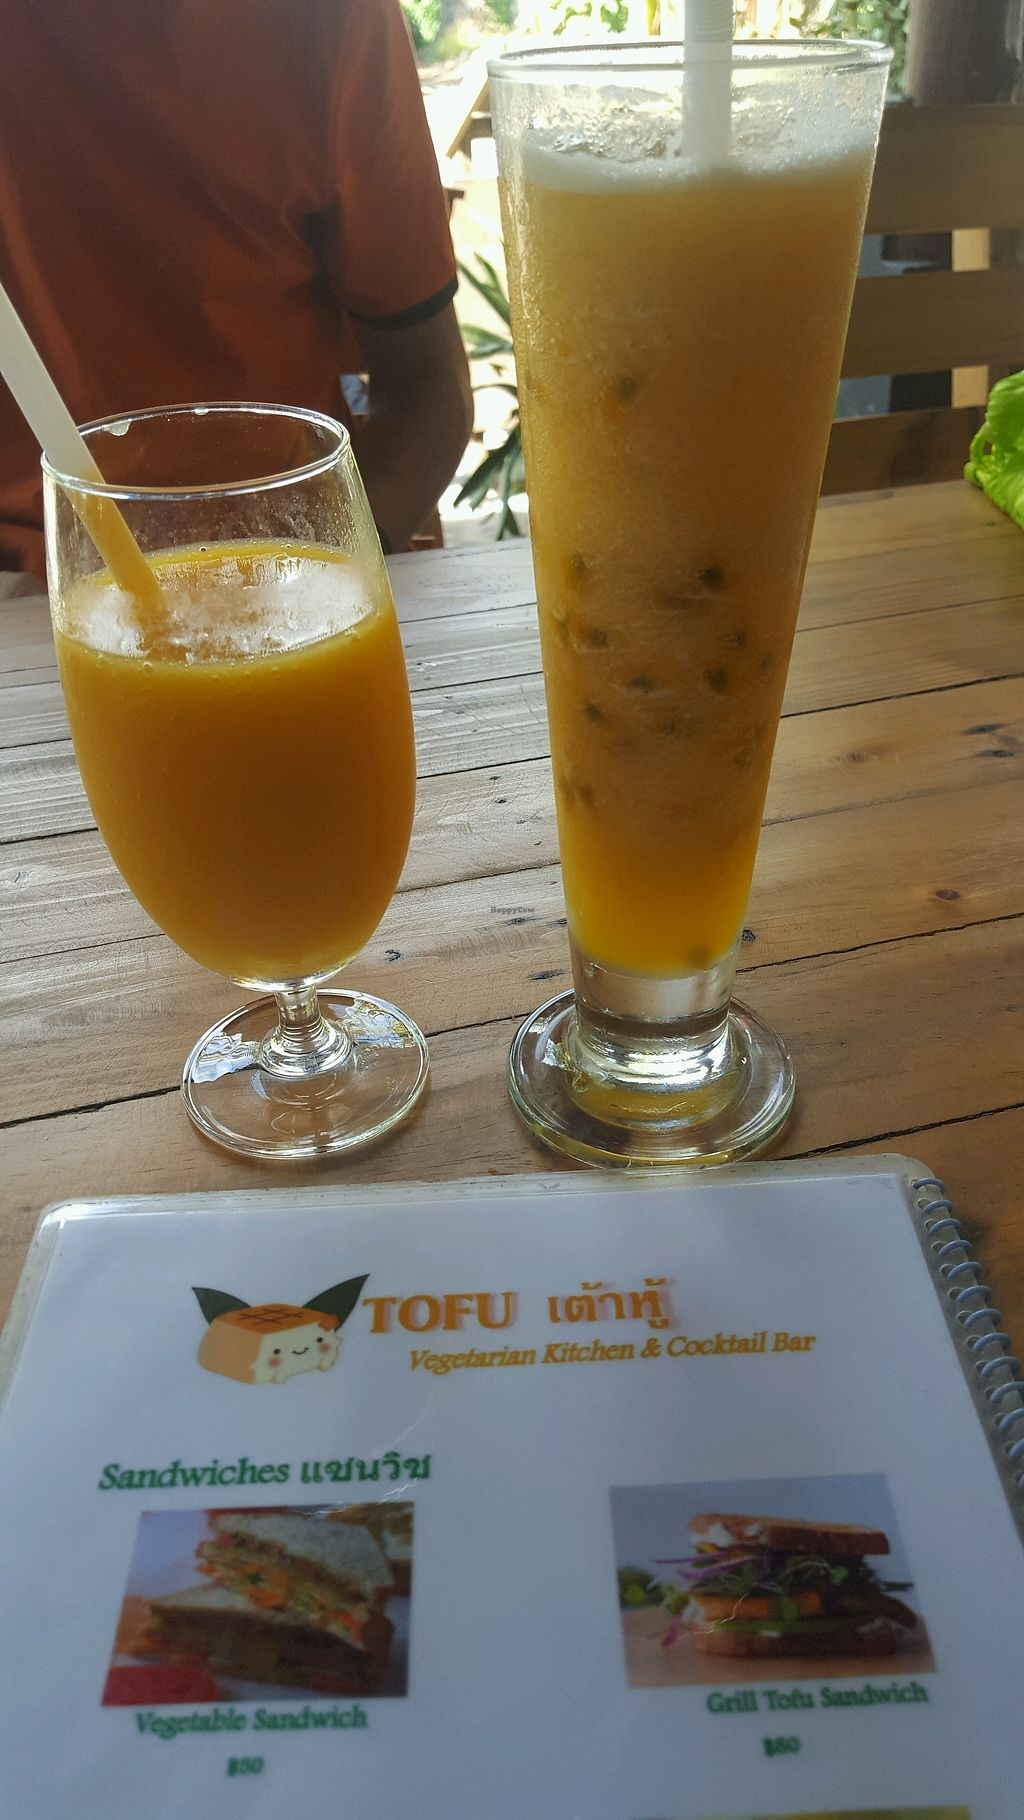 "Photo of Tofu  by <a href=""/members/profile/GosiaDF"">GosiaDF</a> <br/>Mango and passion shake  <br/> December 2, 2017  - <a href='/contact/abuse/image/88087/331365'>Report</a>"